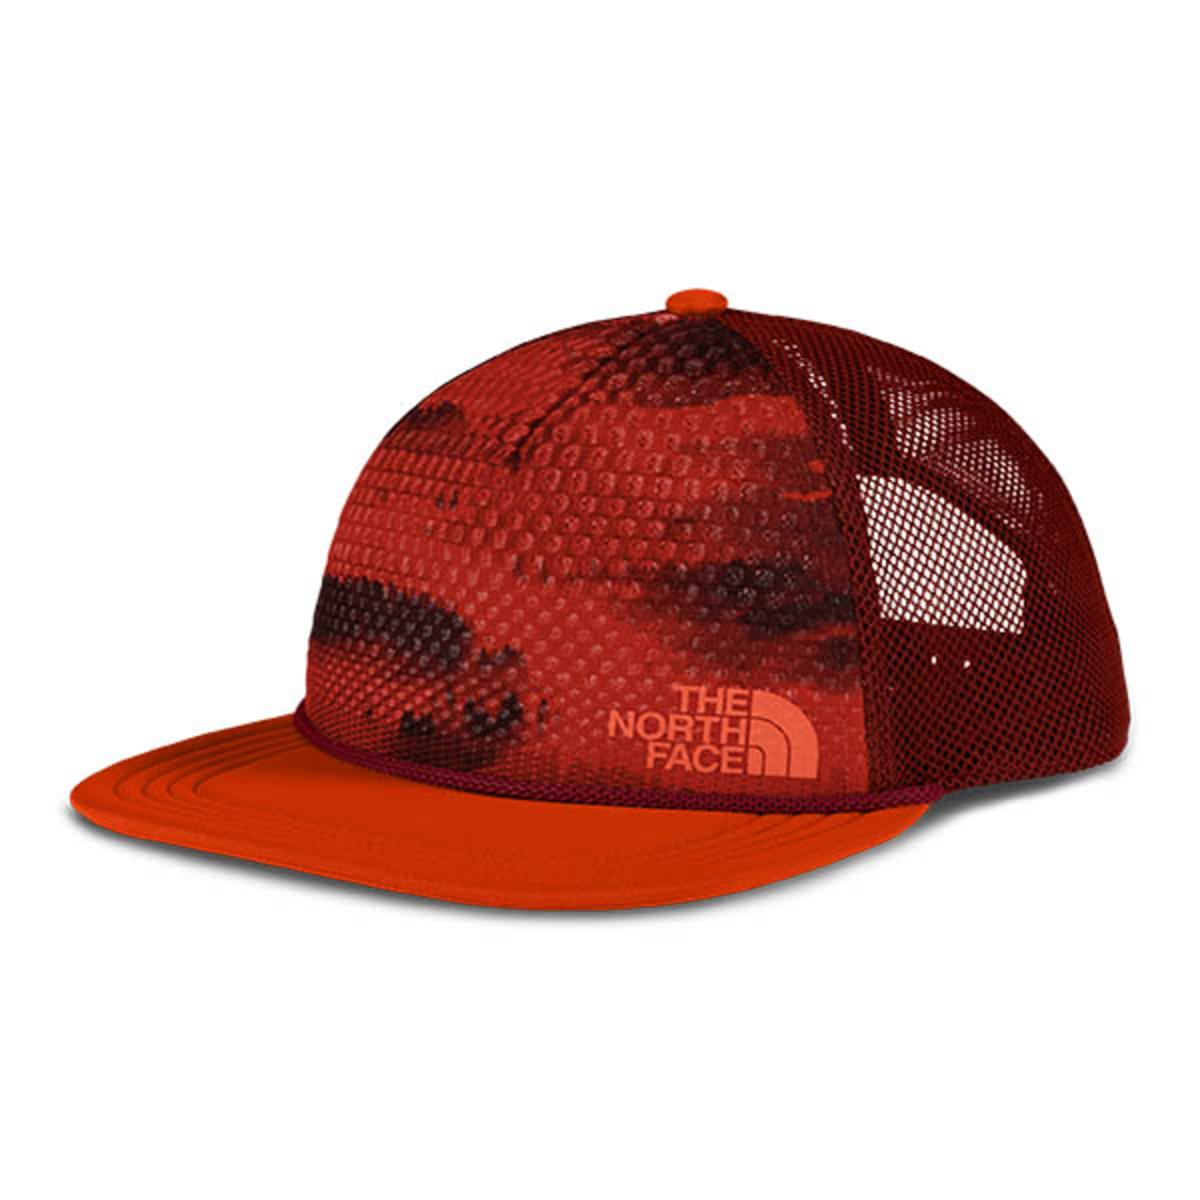 The North Face Trail Trucker Hat - The Warming Store 008add38613